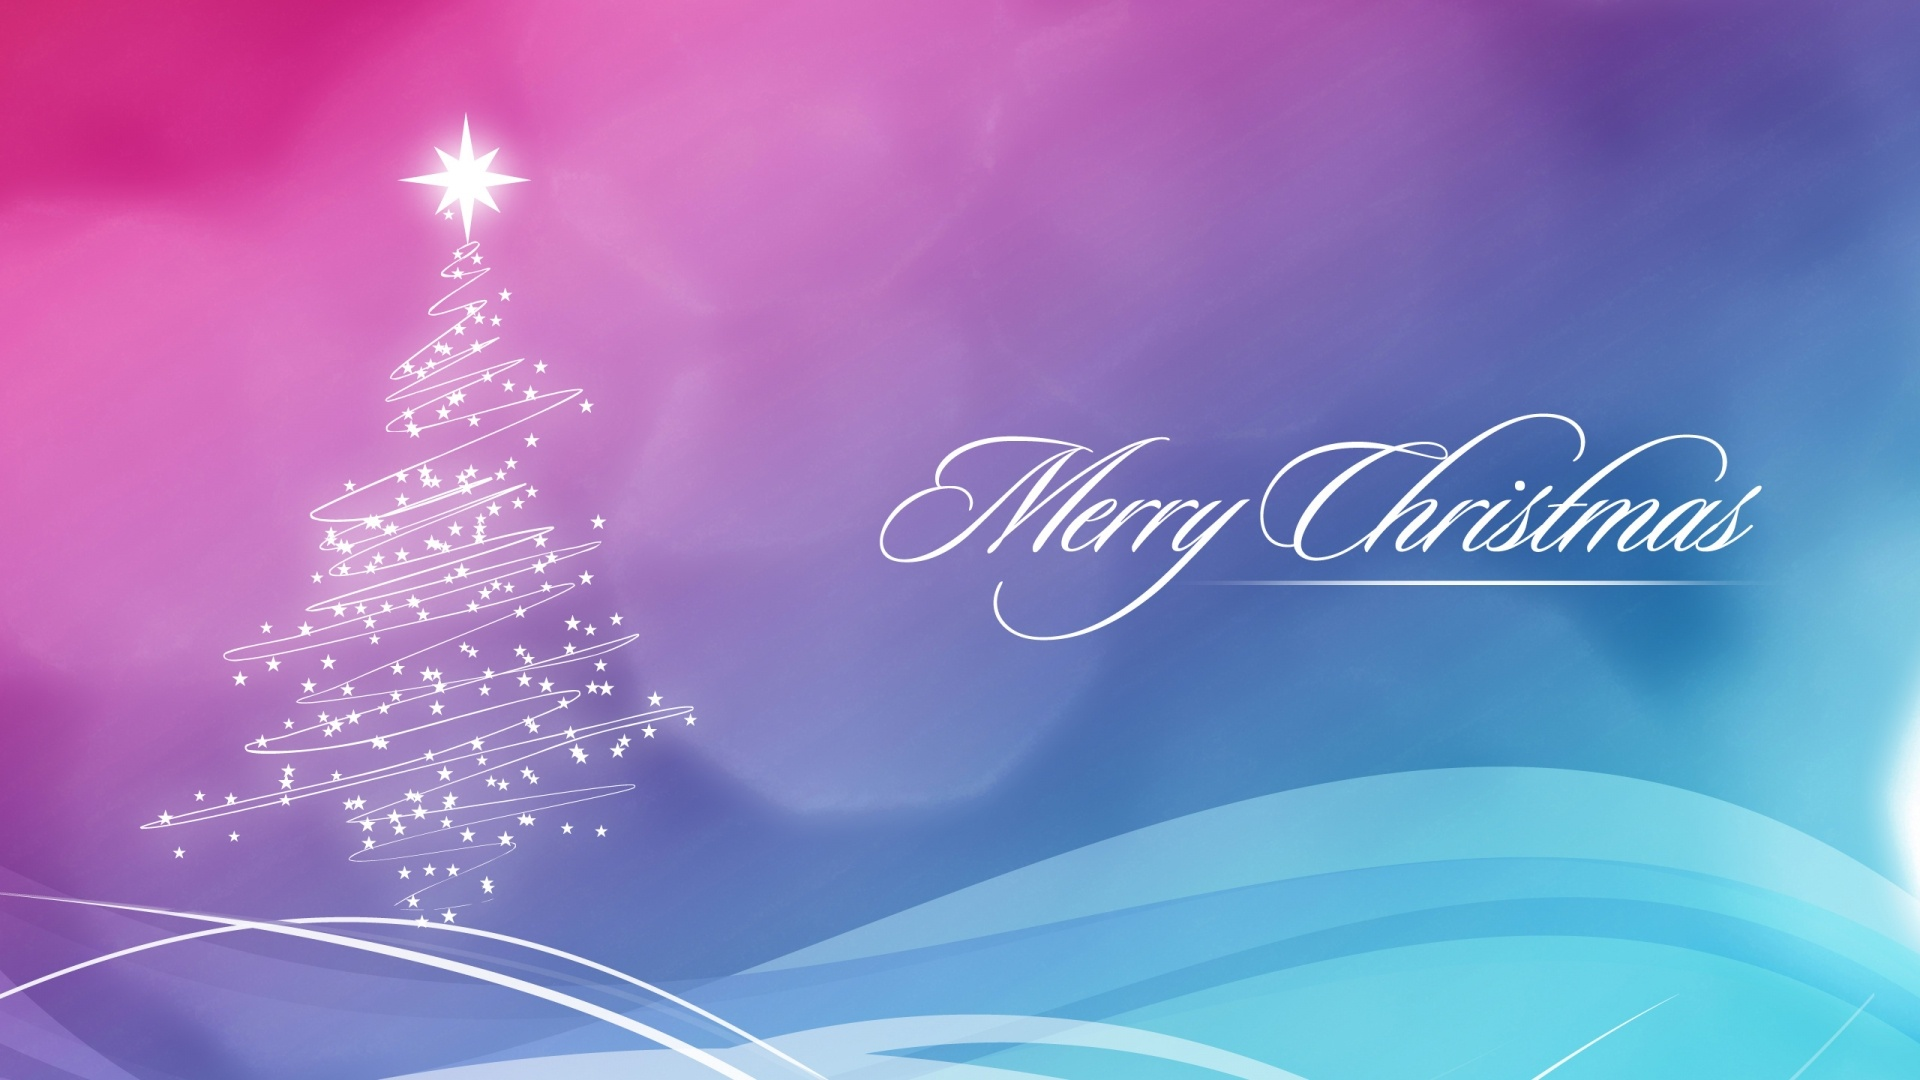 Merry Christmas Wallpaper HD Free Download